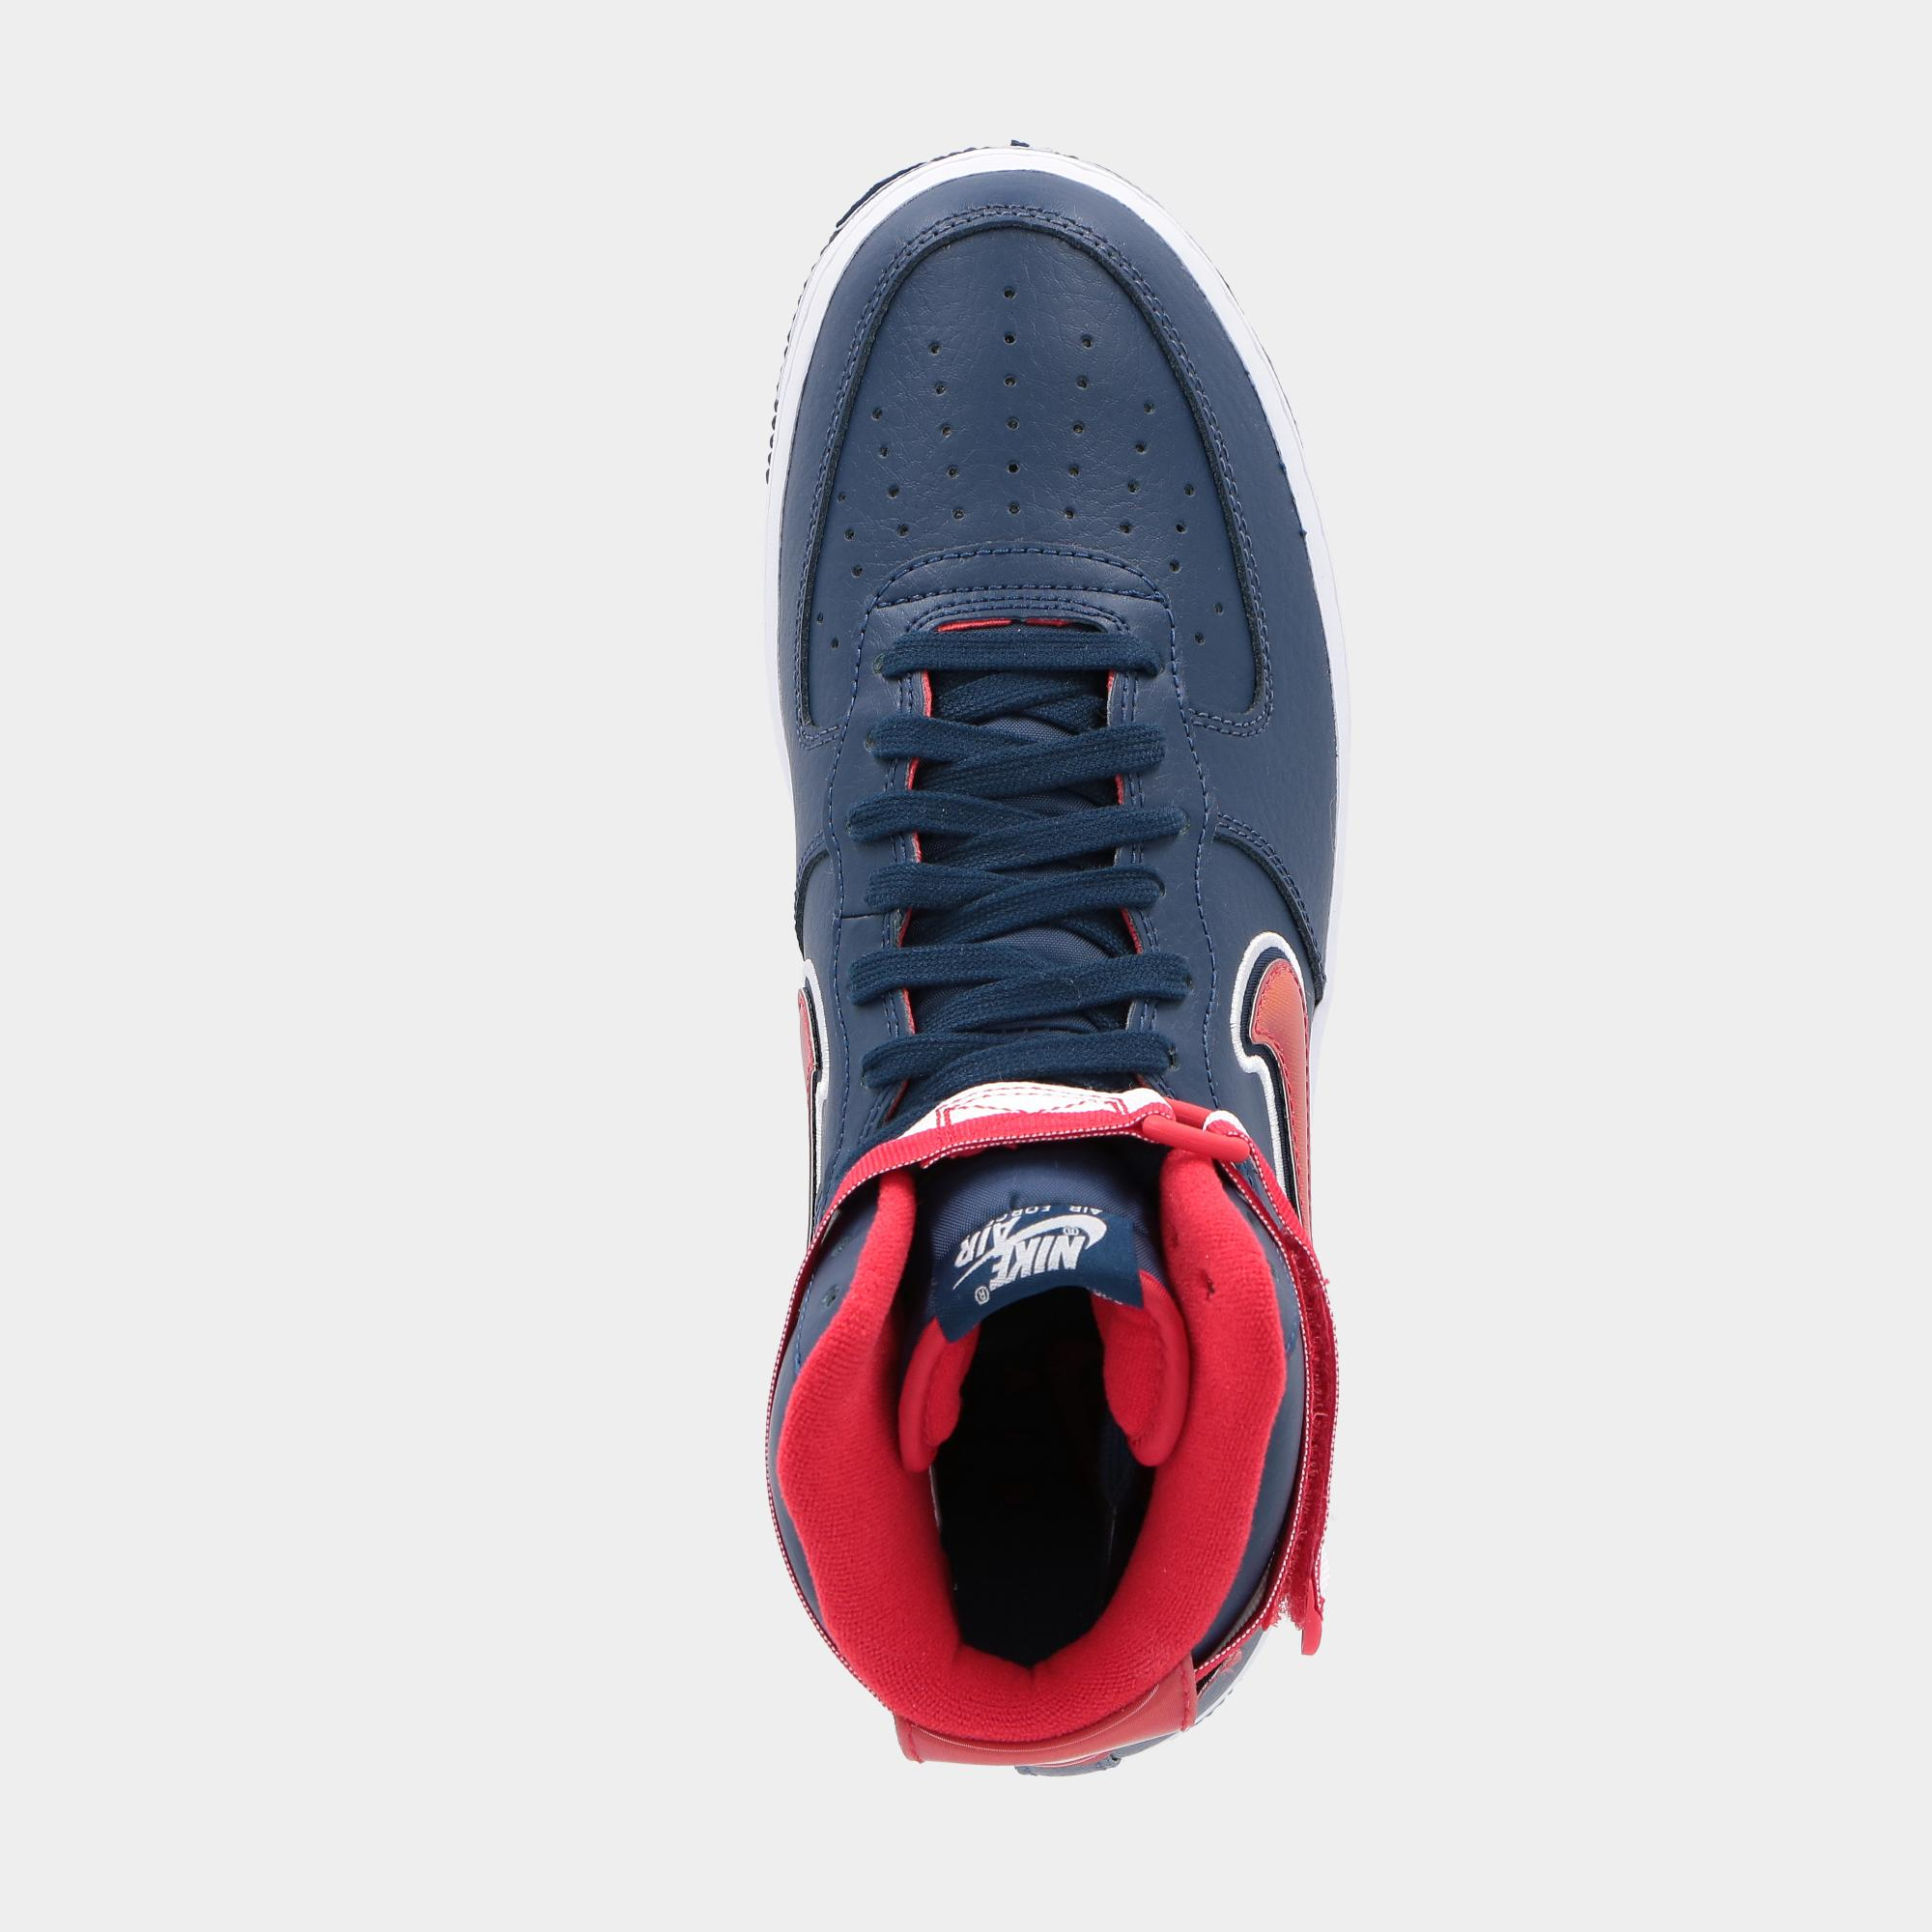 Nike Air Force 1 '07 Lv8 Sport Mnnavy/unvred